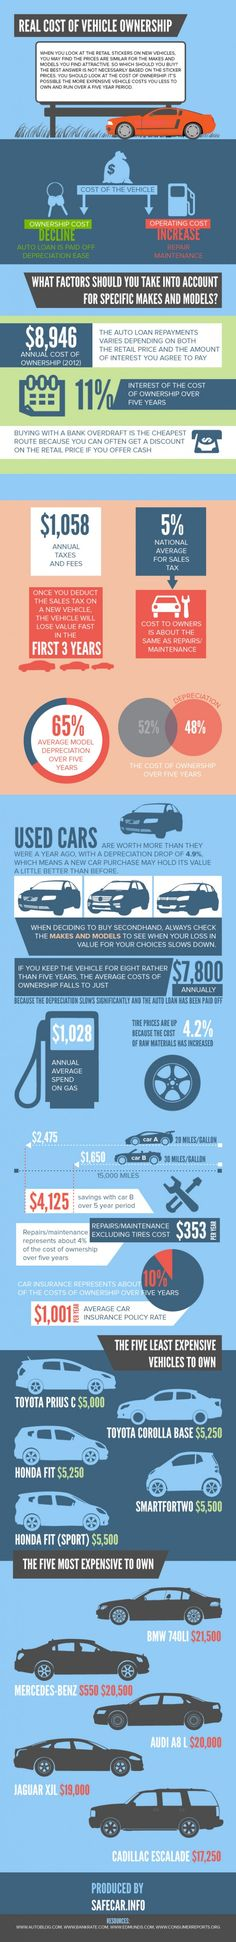 Infographic: Real cost of vehicle ownership